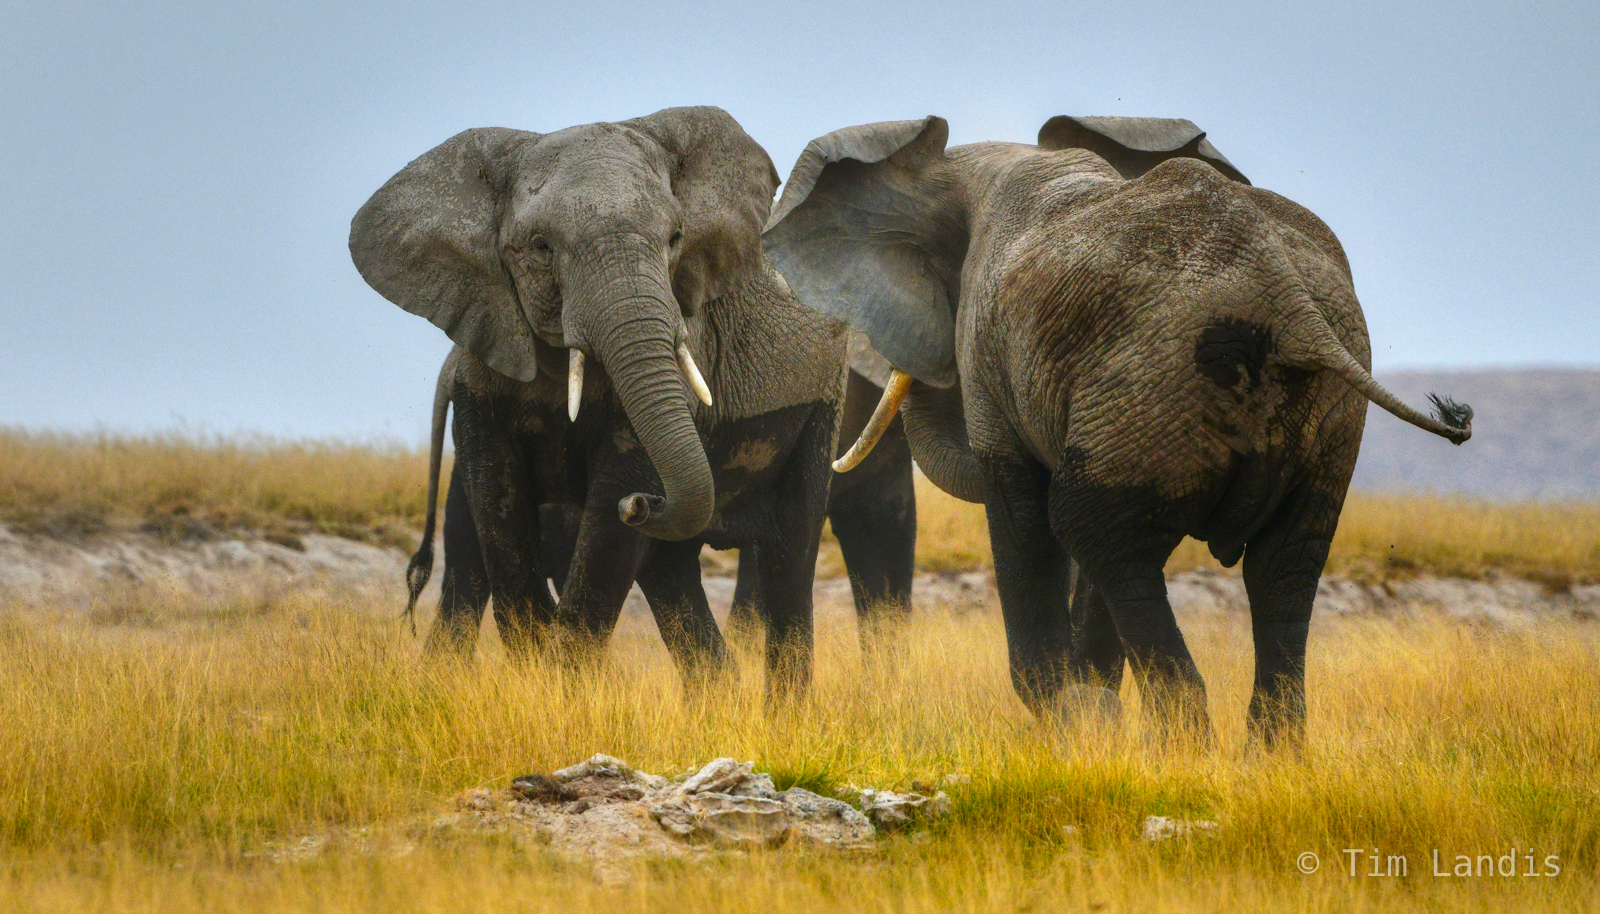 Two elephants size each other up.